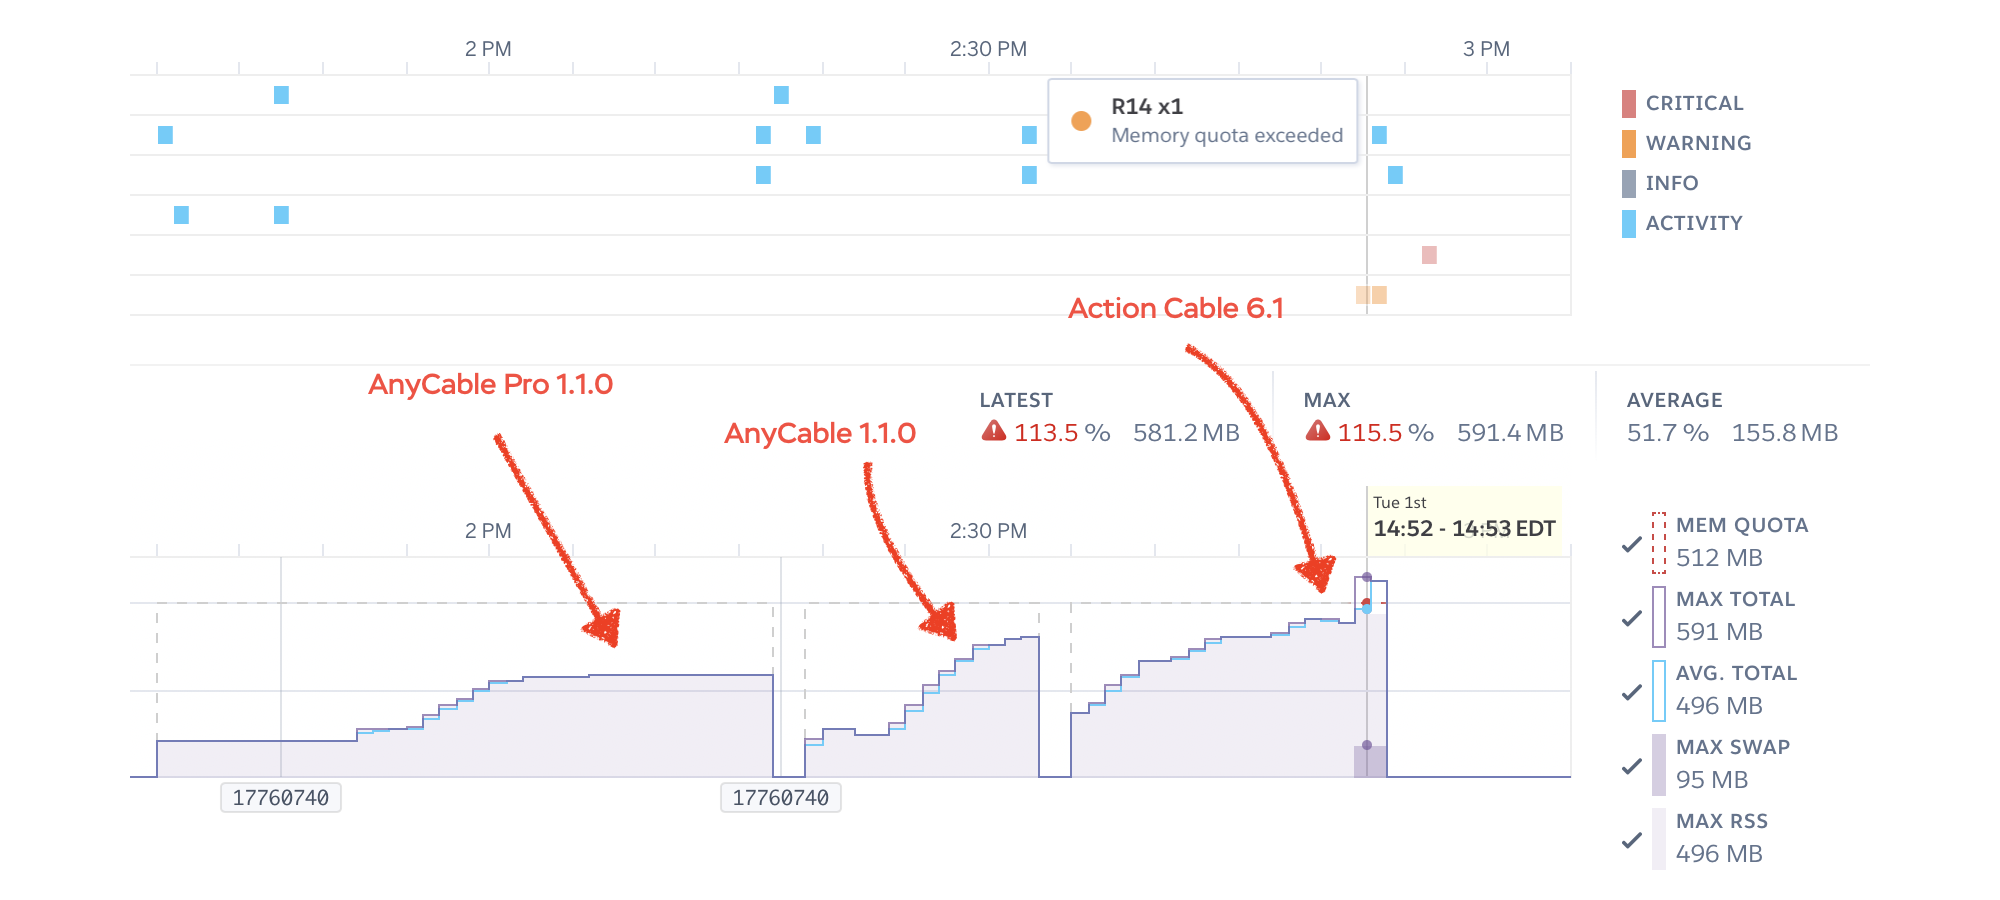 AnyCable Pro vs. AnyCable vs. Action Cable memory usage handling 9k idle clients on Heroku